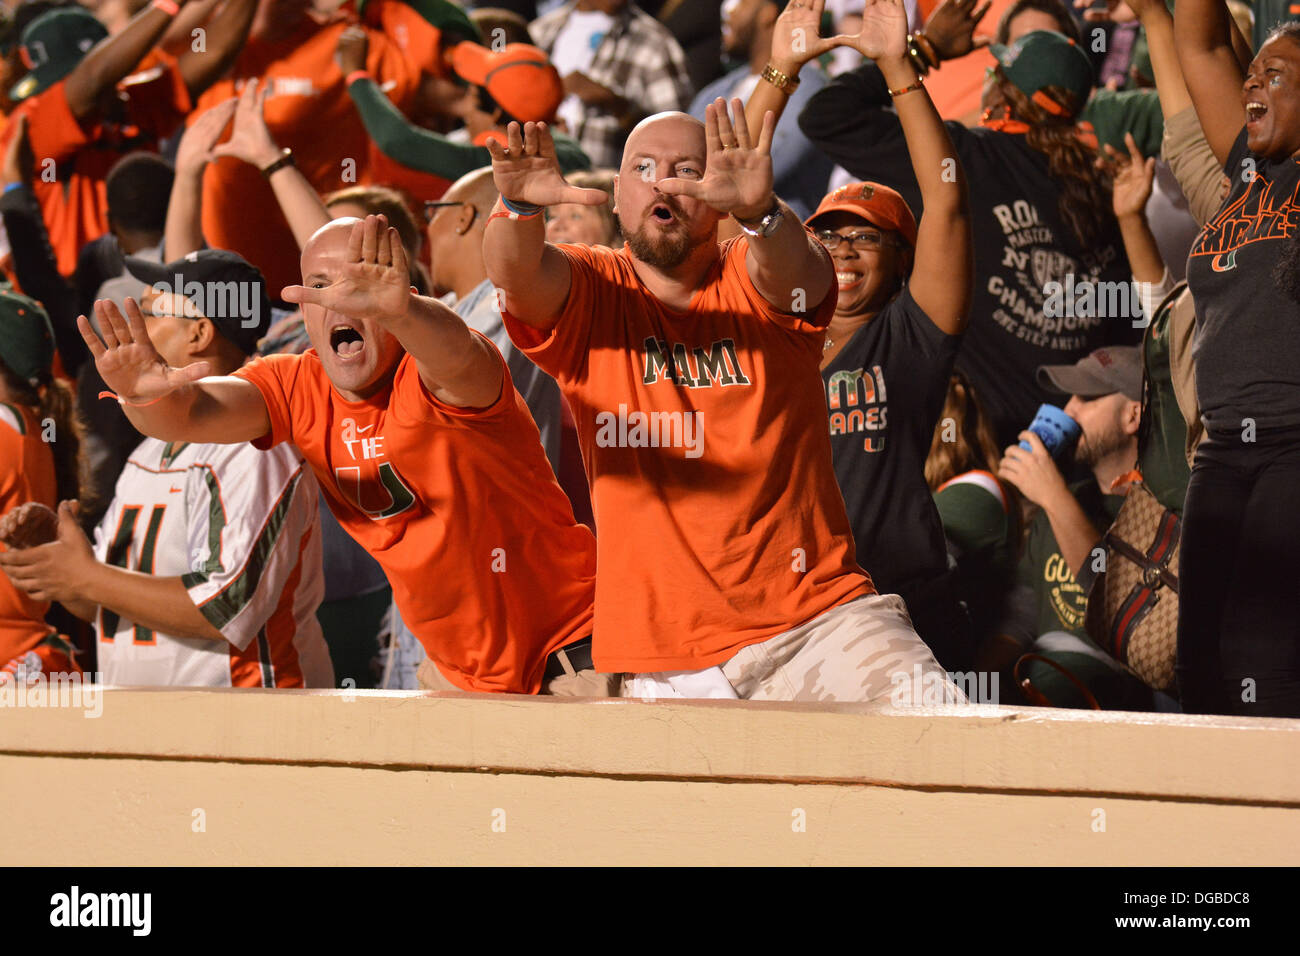 Chapel Hill, NC, USA. 17th Oct, 2013. October 17, 2013: Fans of the Miami Hurricanes cheer during the NCAA Football Stock Photo